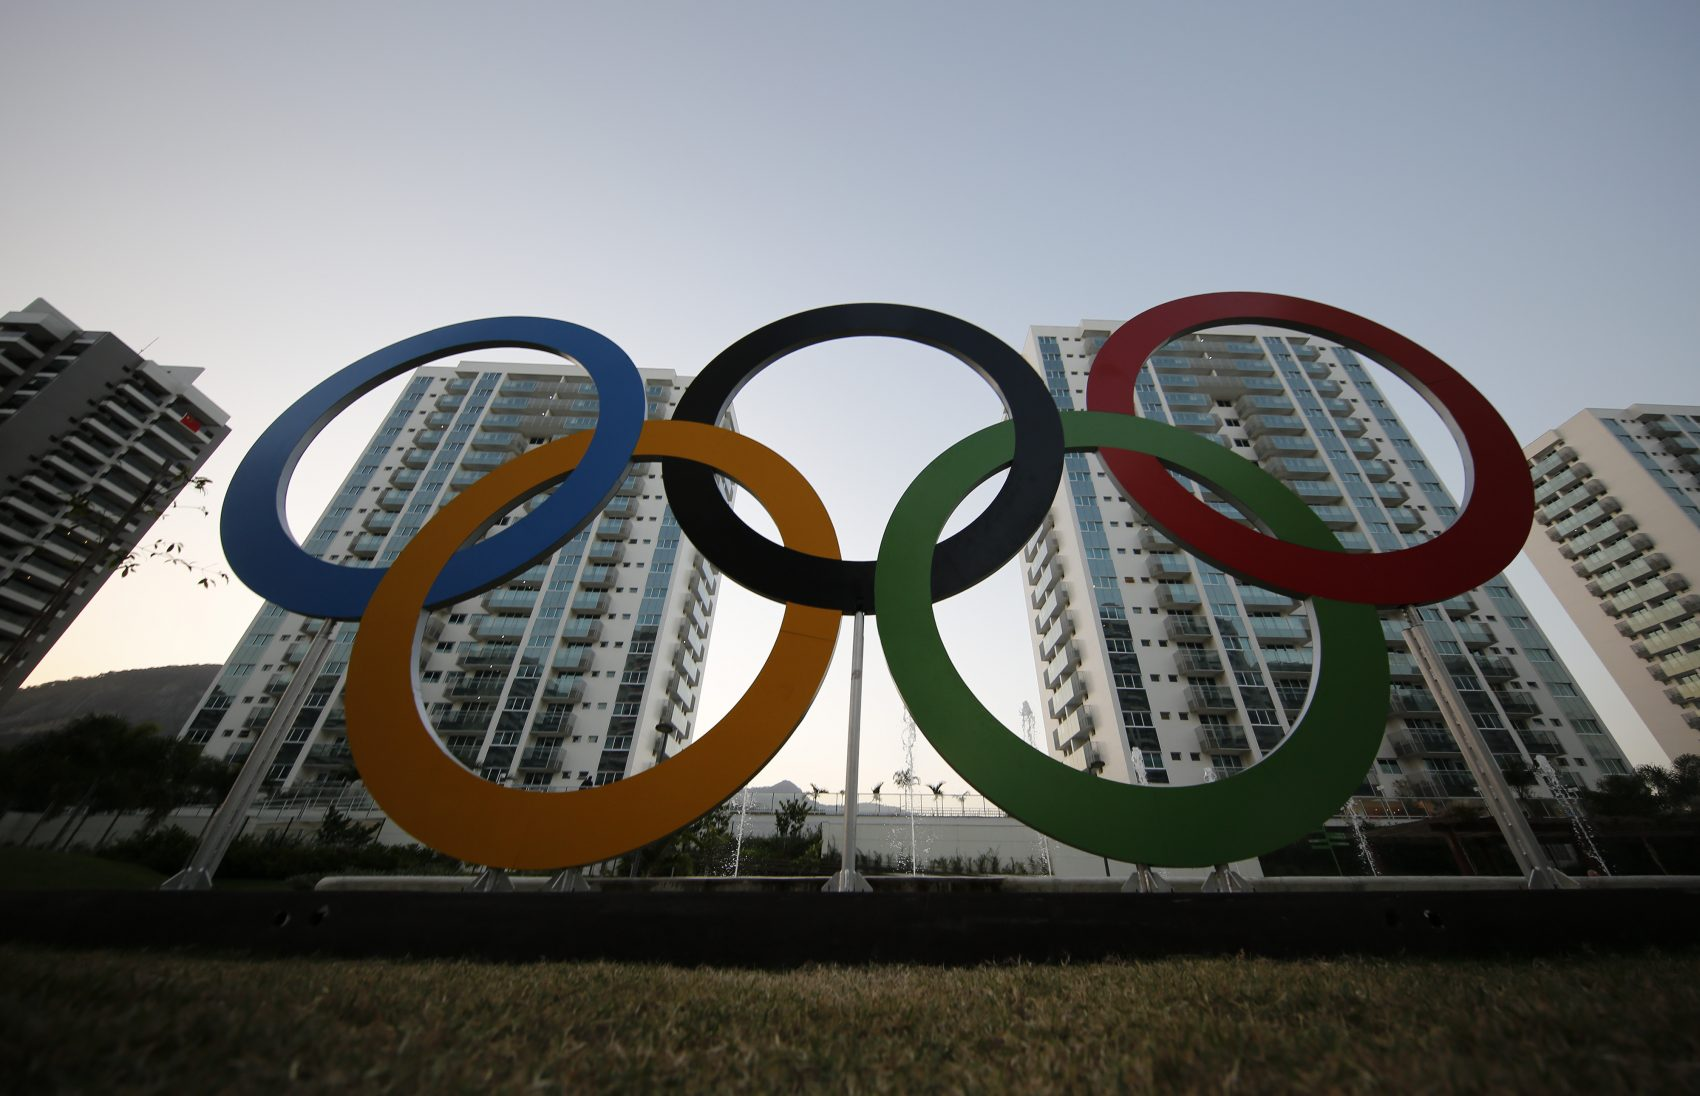 The Olympic rings in front of the Olympic Village in Rio de Janeiro, Brazil. The brand new complex of residential towers are where nearly 11,000 athletes and some 6,000 coaches and other handlers will sleep, eat and train during the games. (Leo Correa/AP)